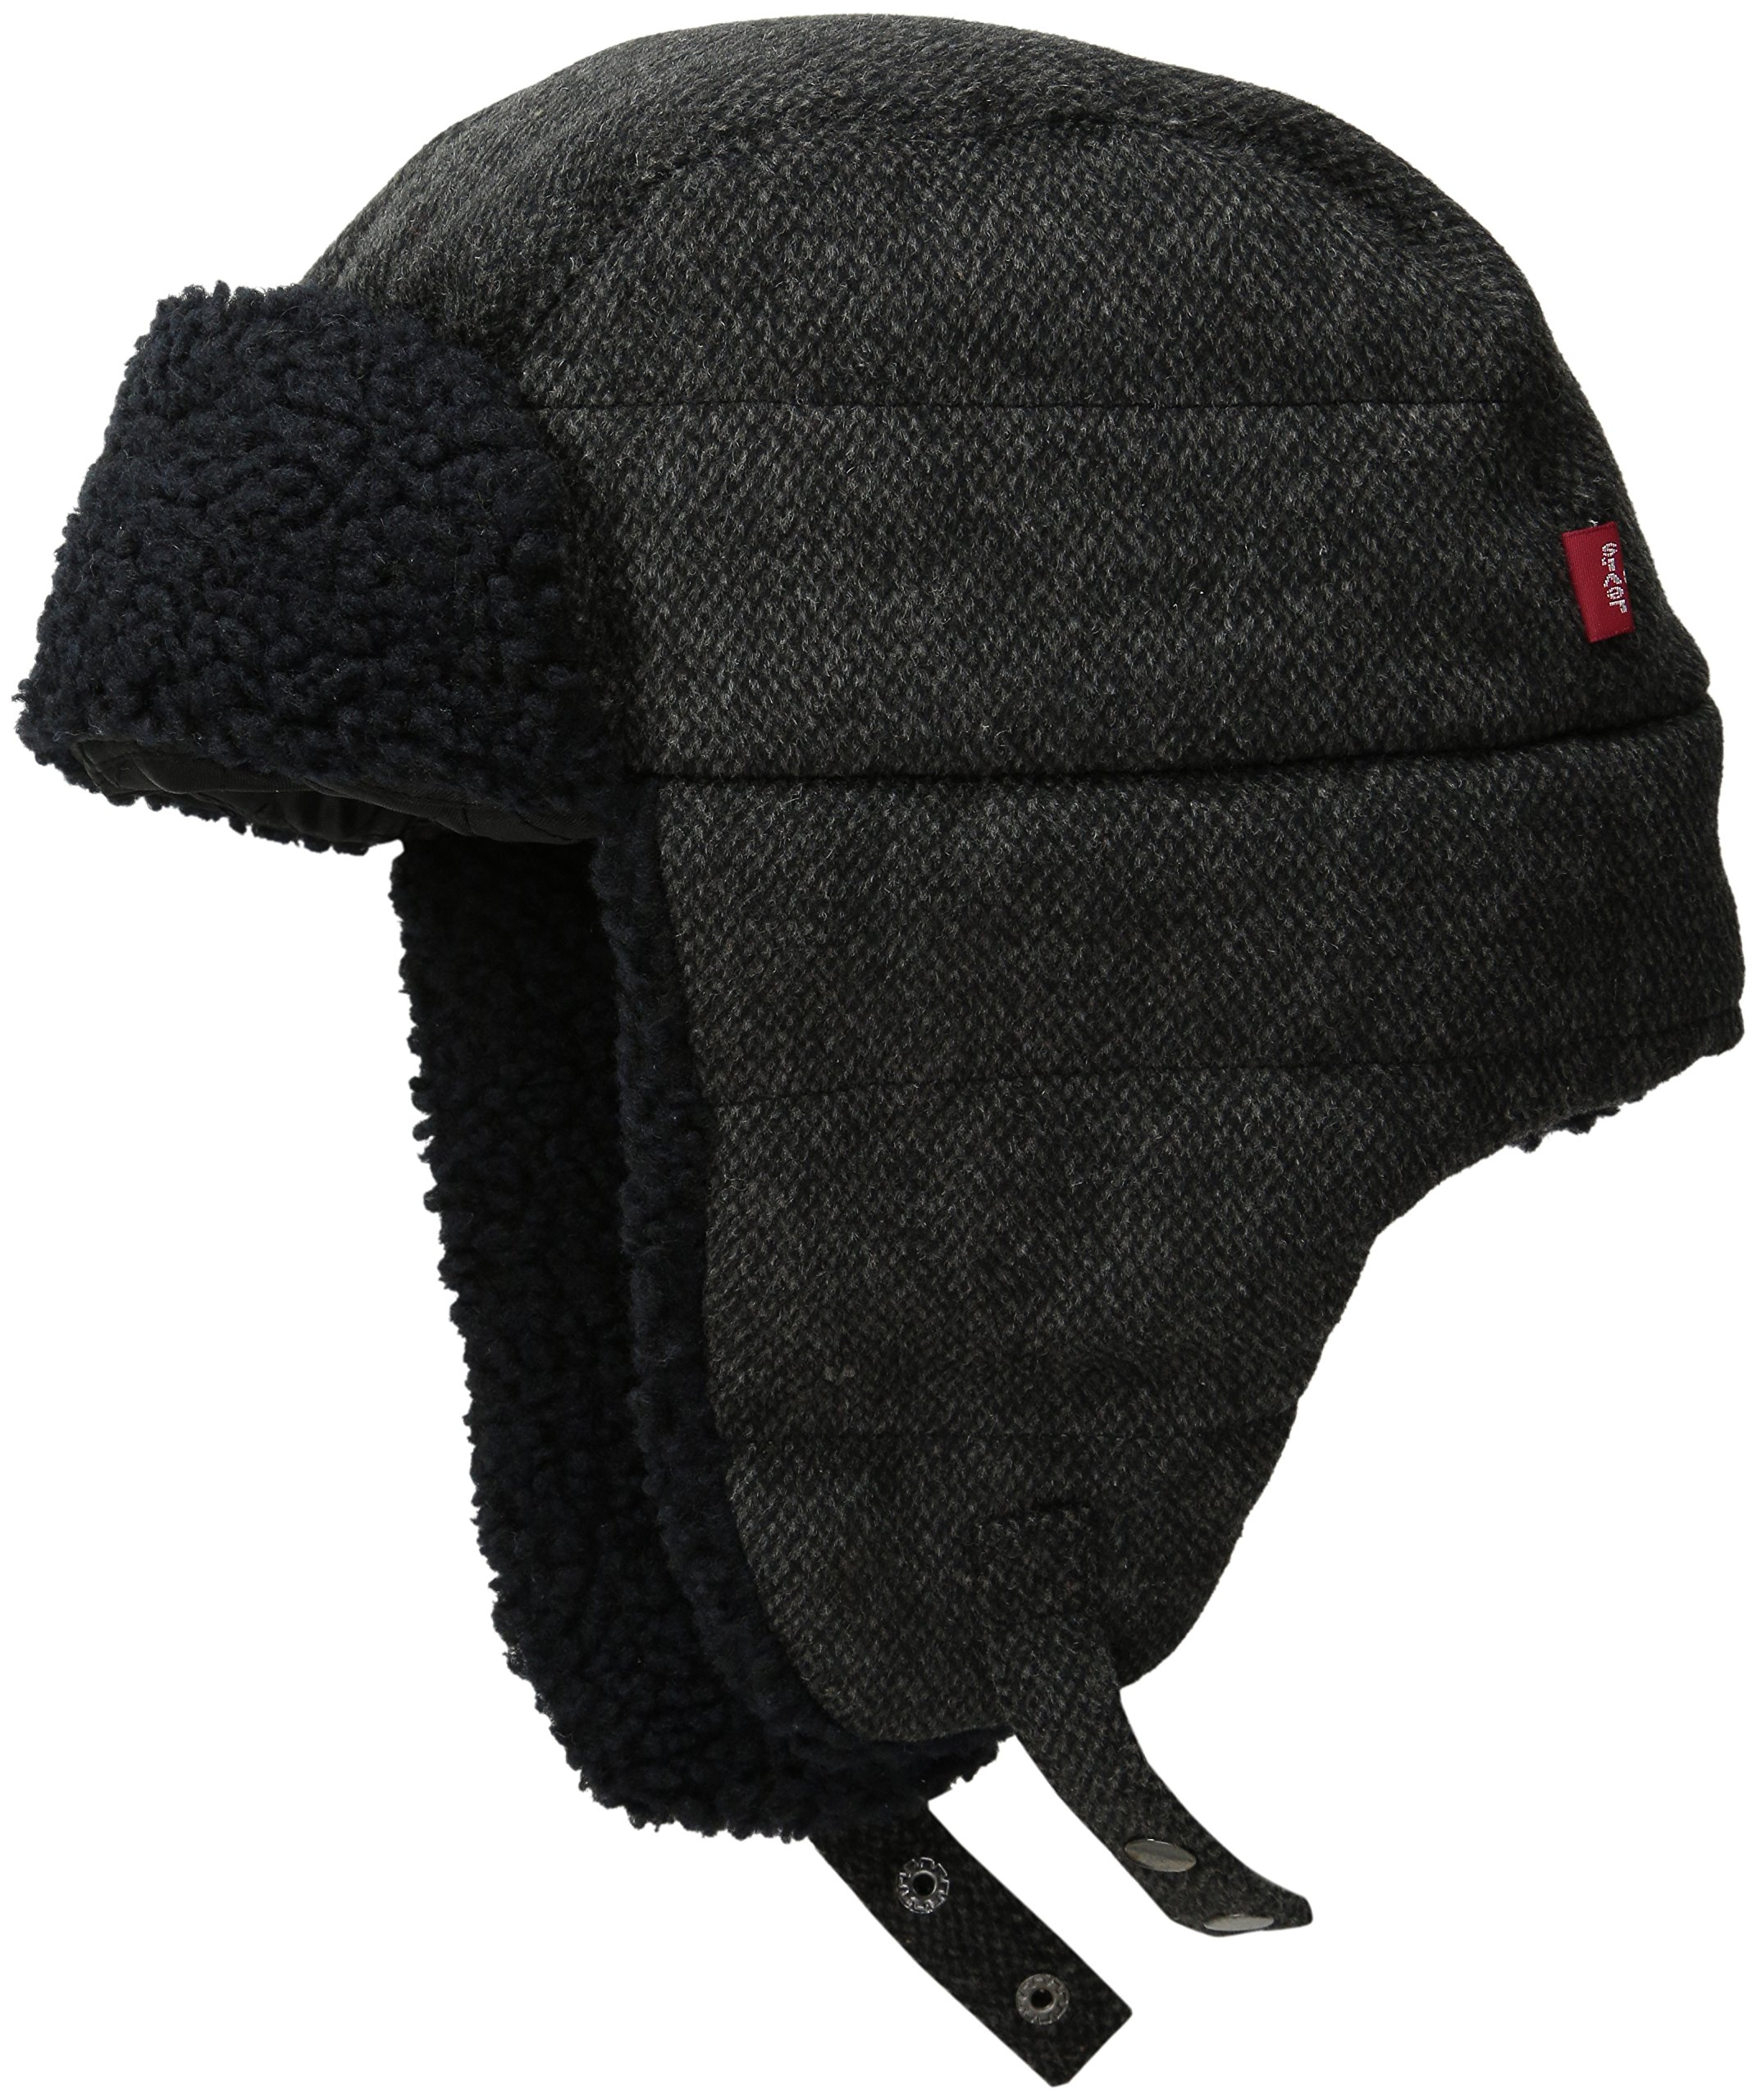 Levi's Men's Micro Box Pattern Two-Toned Sherpa Lined Snap up Trapper Hat,Black,Small/Medium